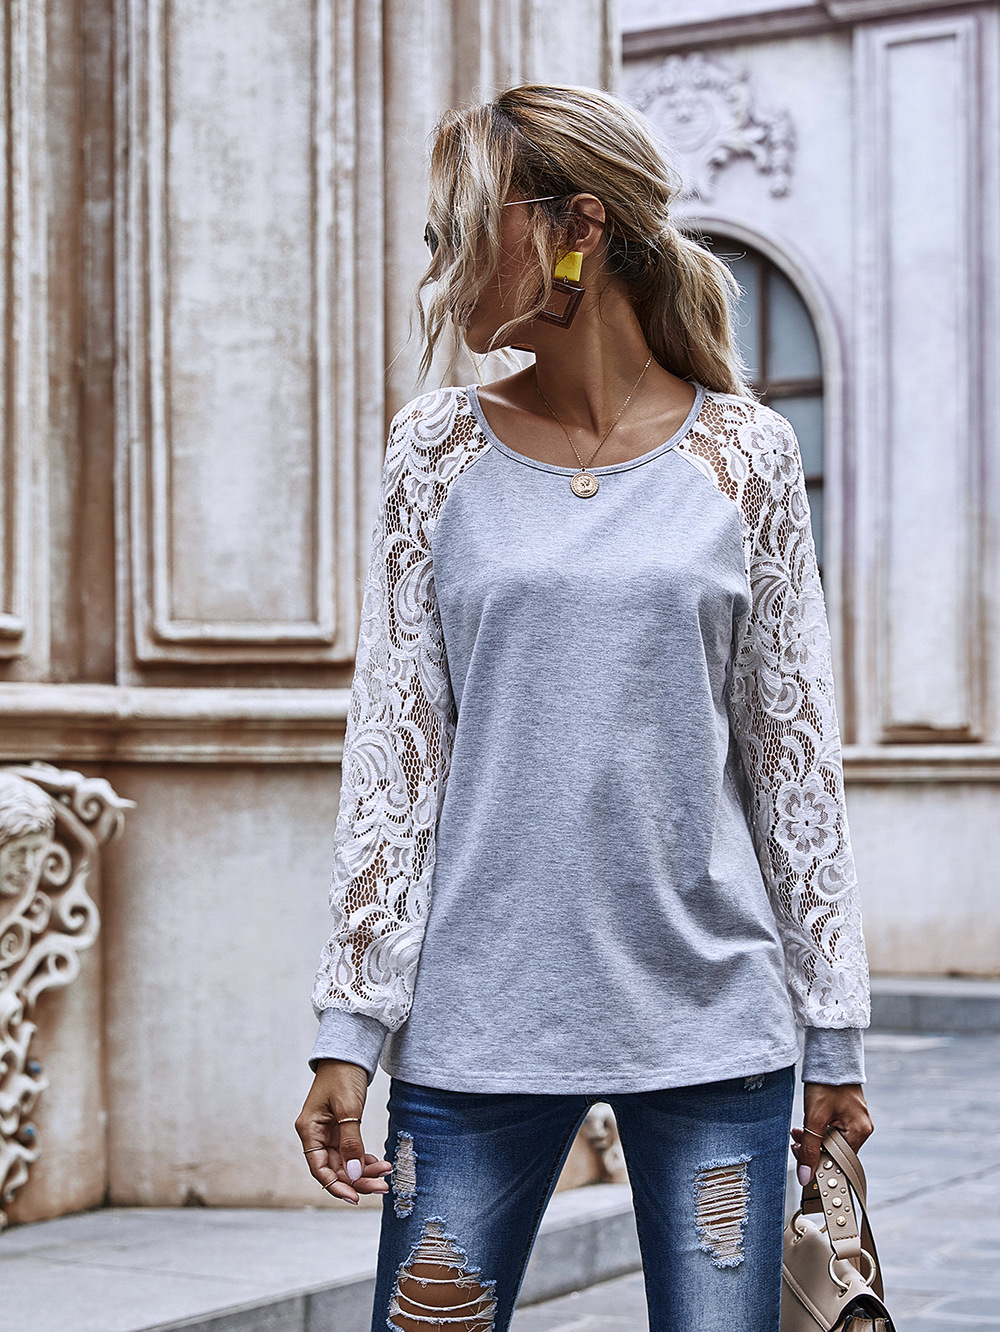 hollow lace sleeve round neck sweater women new casual top wholesale NHDF56